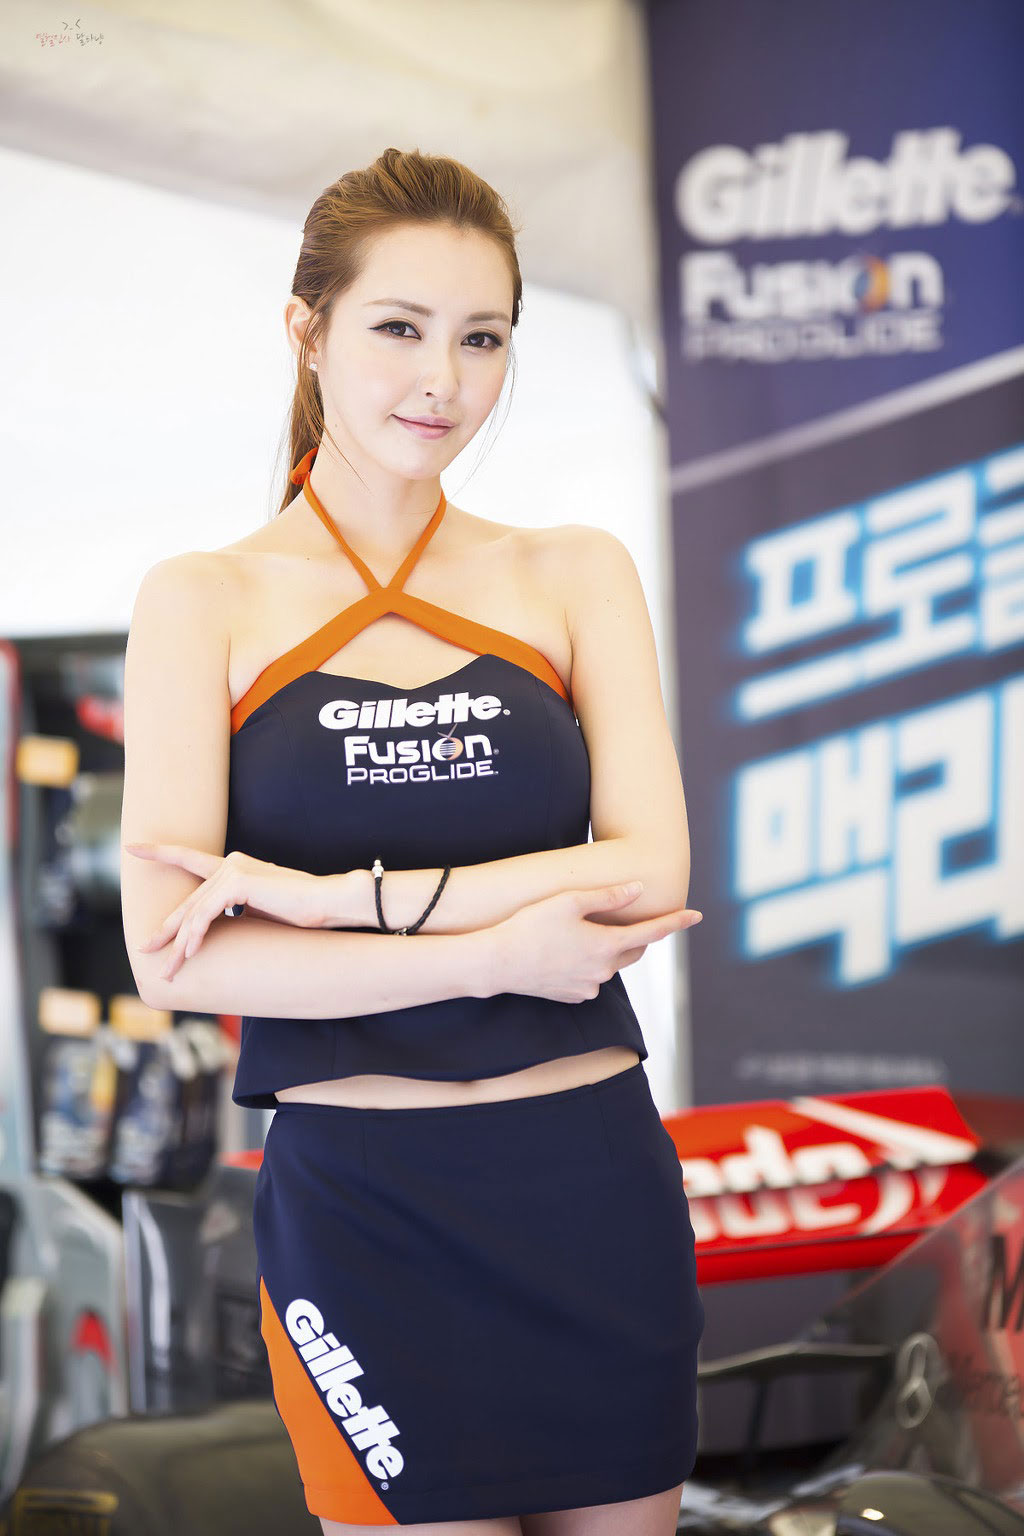 Kang Yui Korean Gillette F1 event